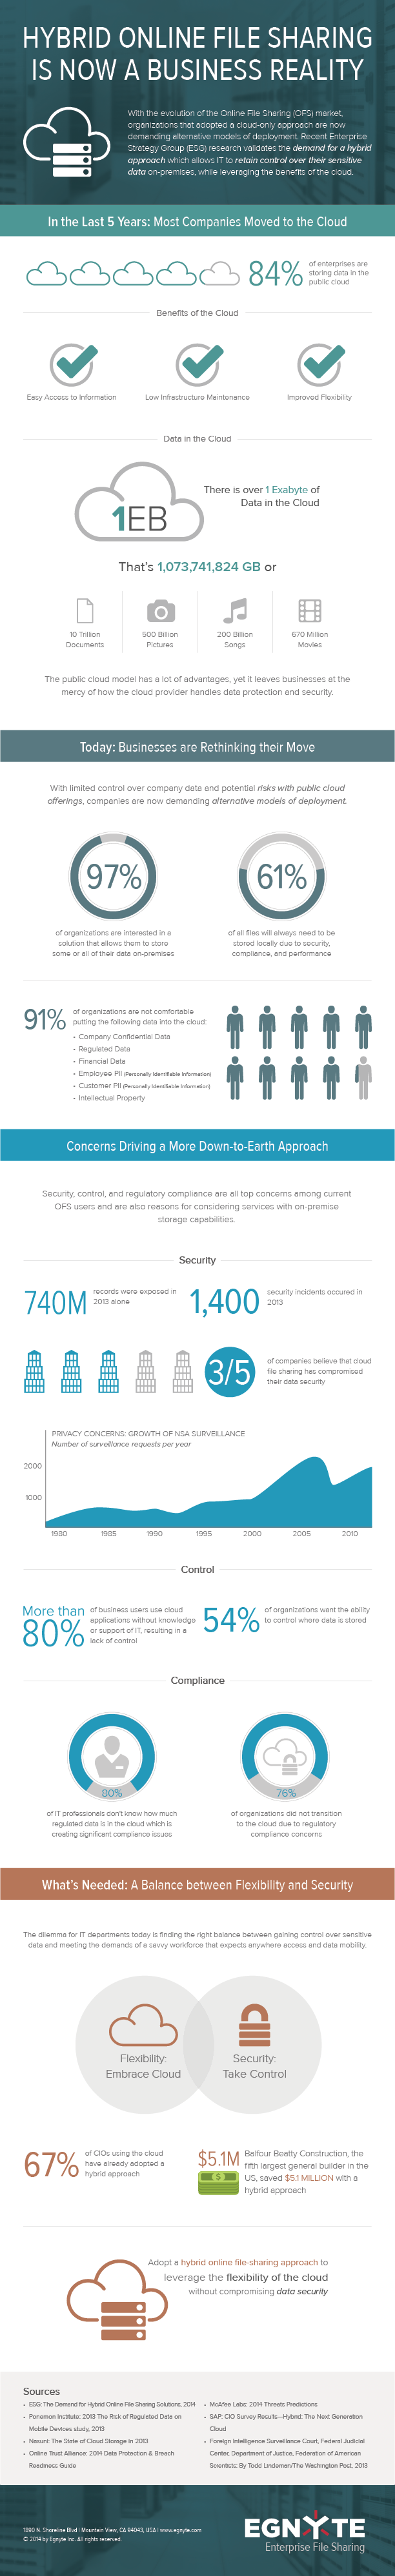 A Graphic Look at Why Cloud Adopters Choose Hybrid [Infographic] - Egnyte Blog